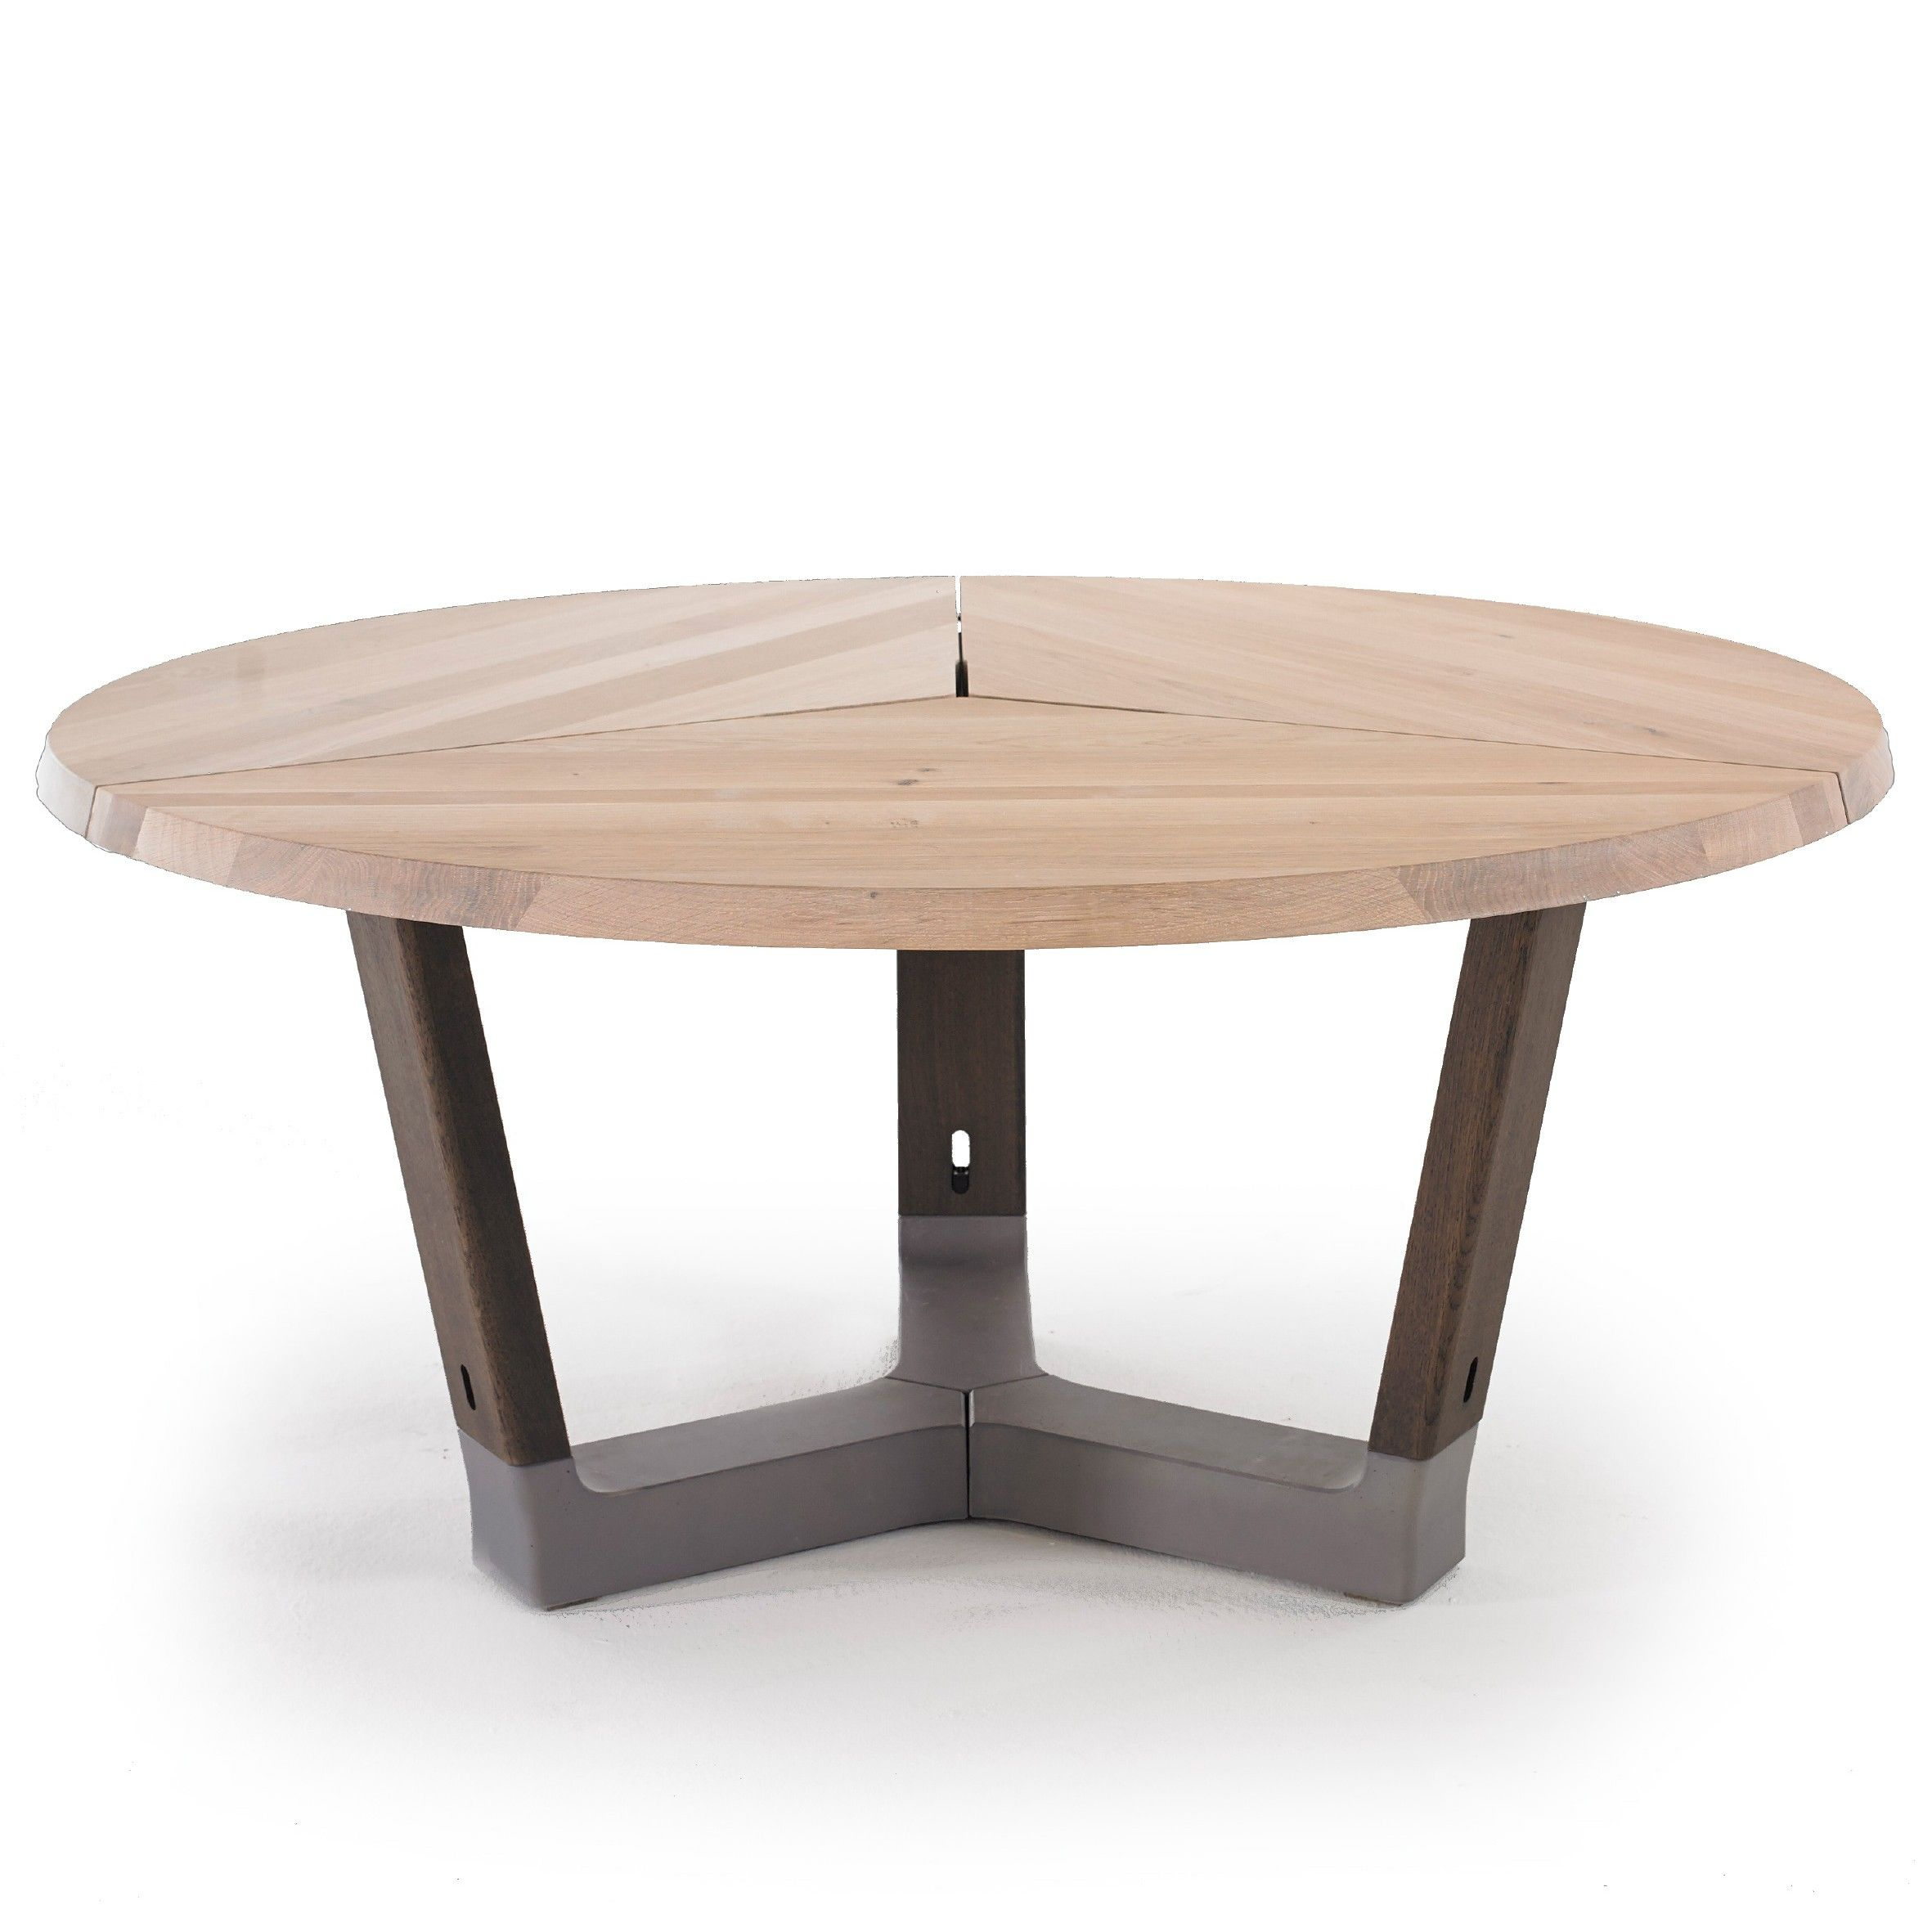 Arco base round tafel 160 flinders verzendt gratis for Table ronde 52 chimay